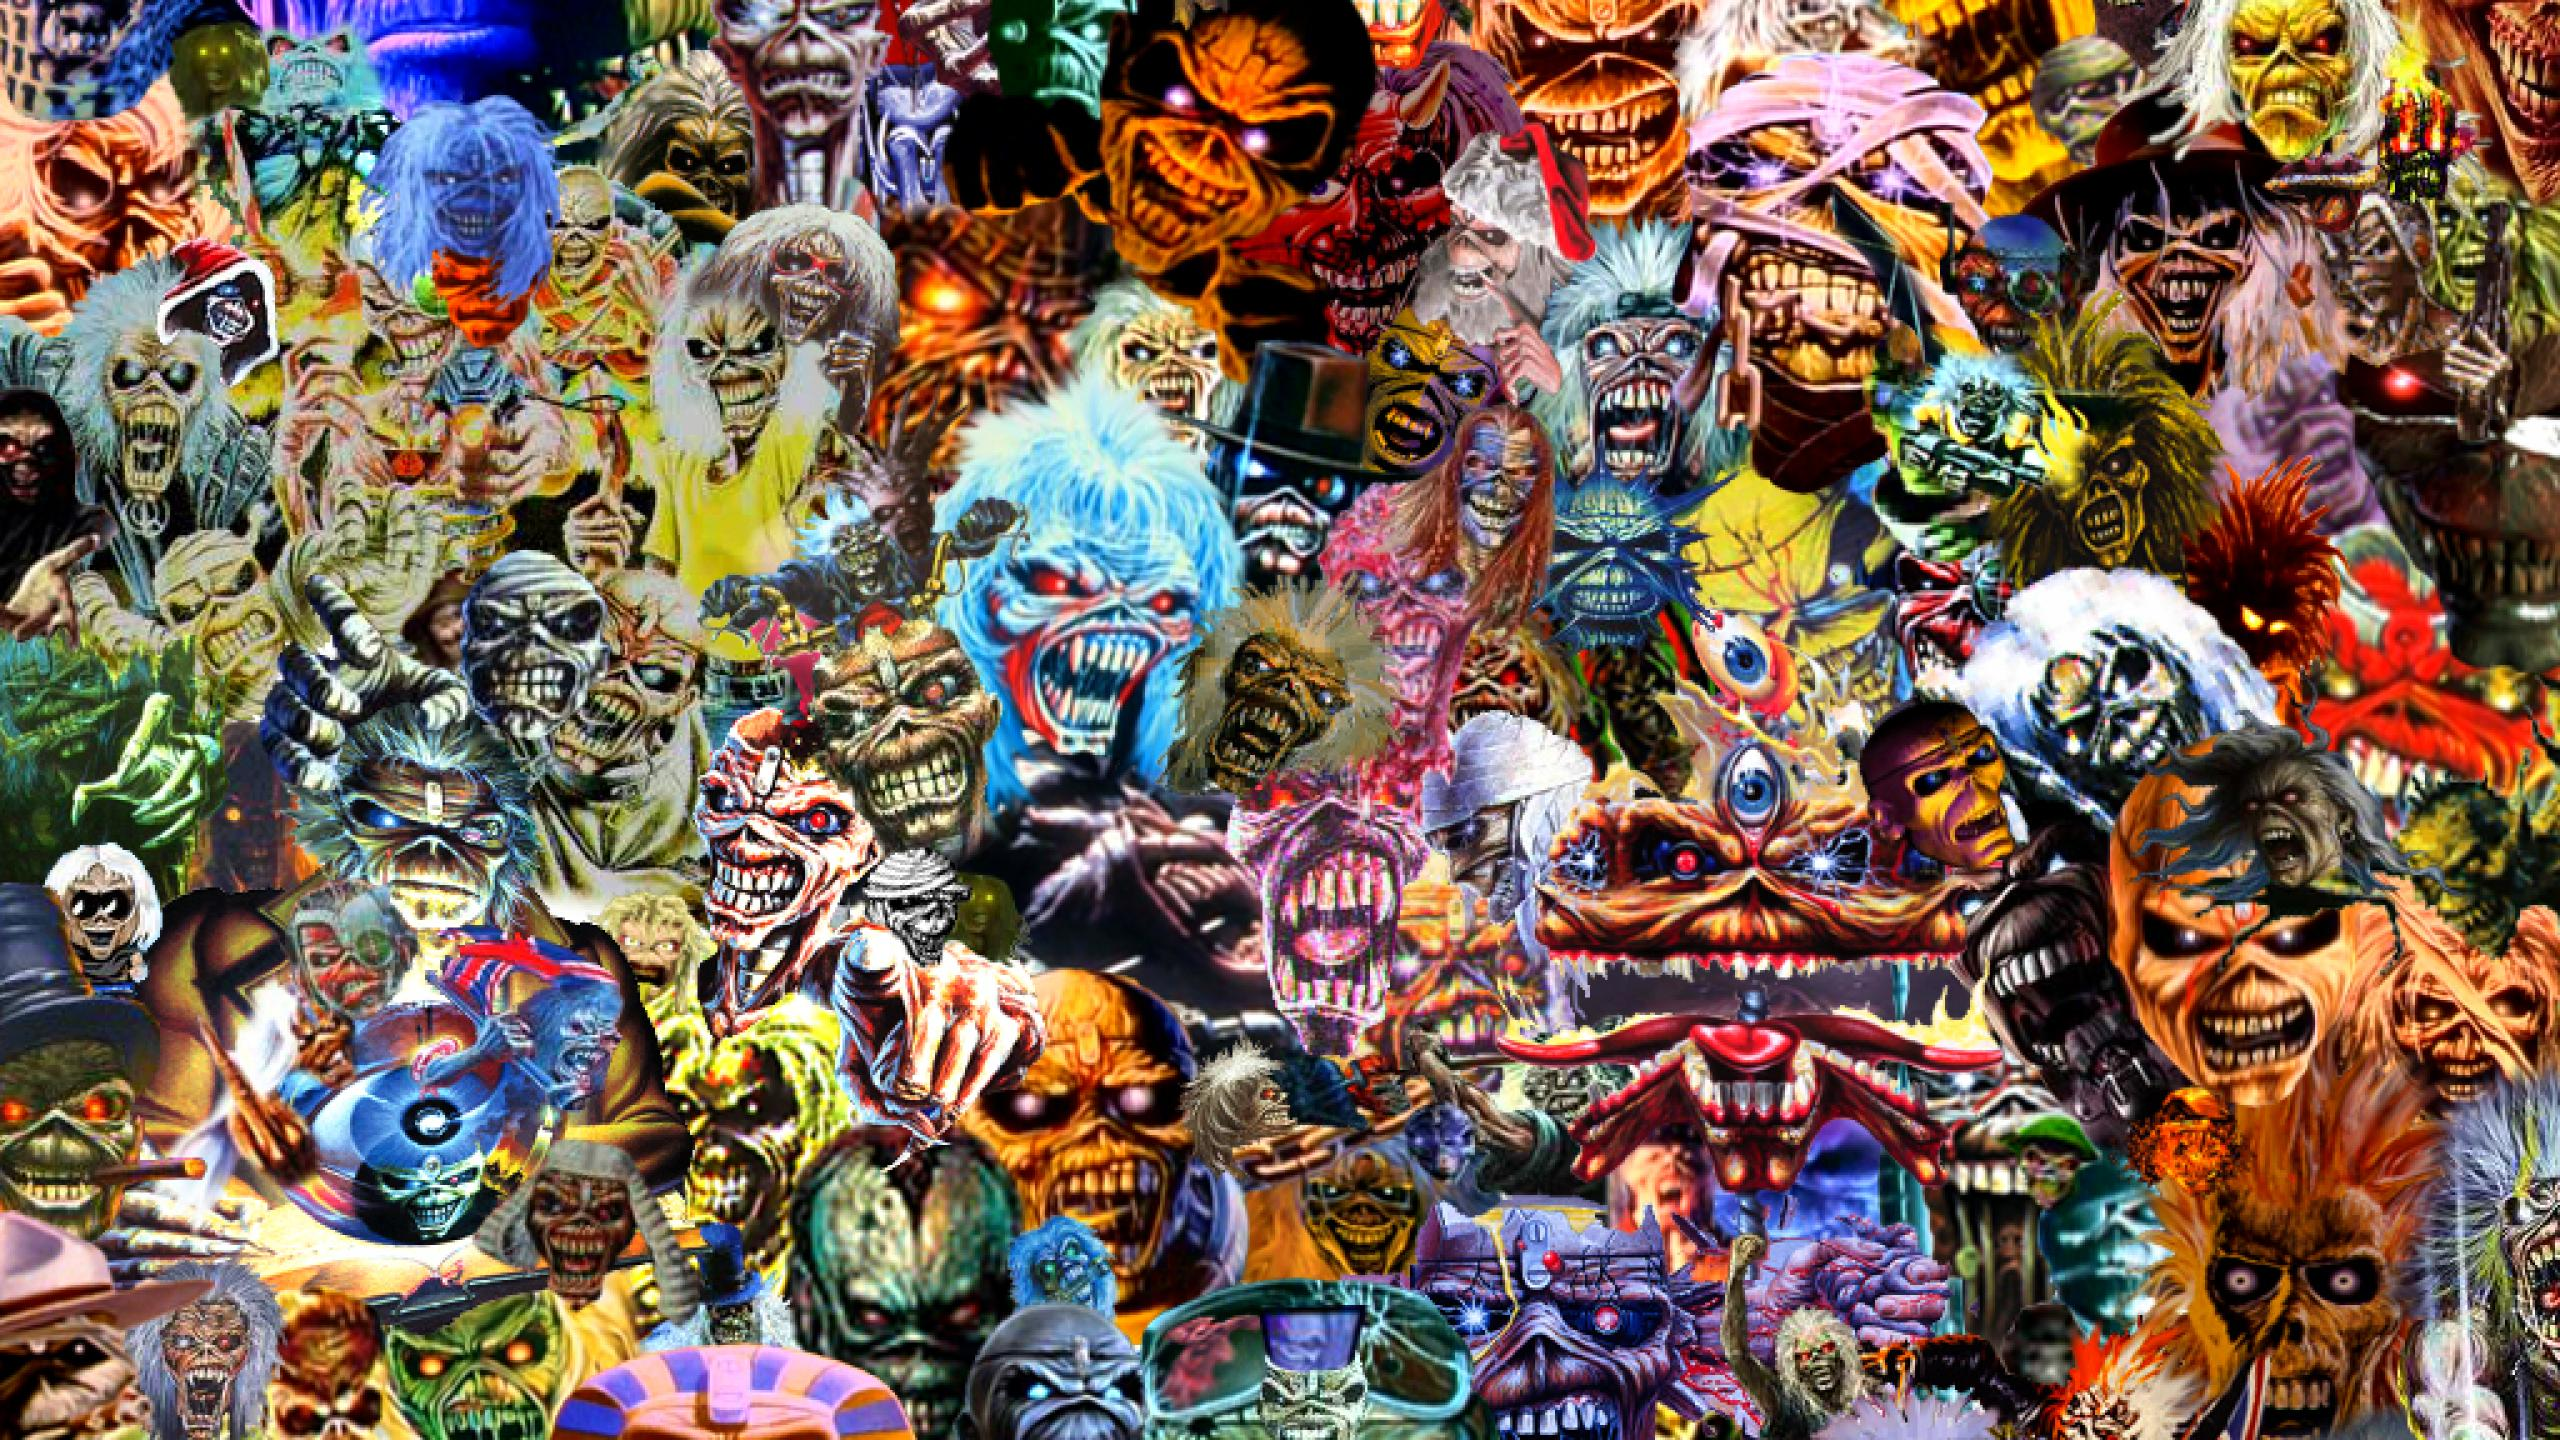 iron maiden eddie cool faces entertainment 2560x1440 hd hình nền 469033